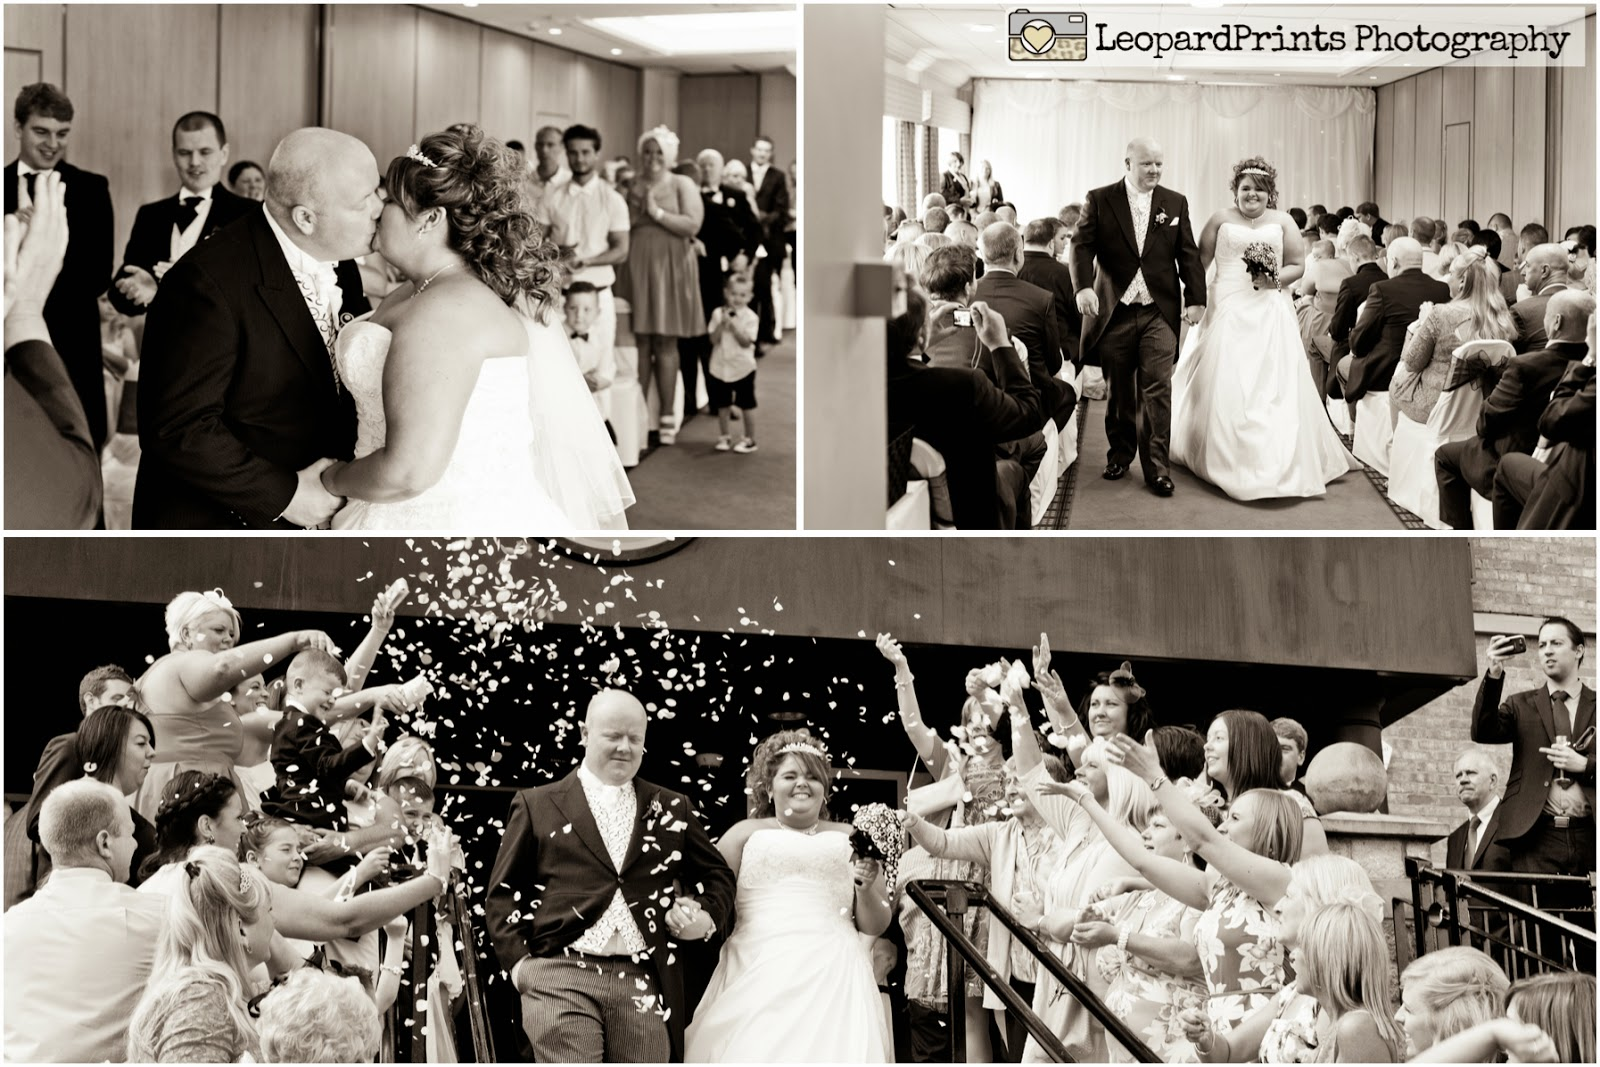 Wedding Chair Covers Newcastle Upon Tyne Bed Bath And Beyond Kitchen Photographer At The Devere Village Hotel